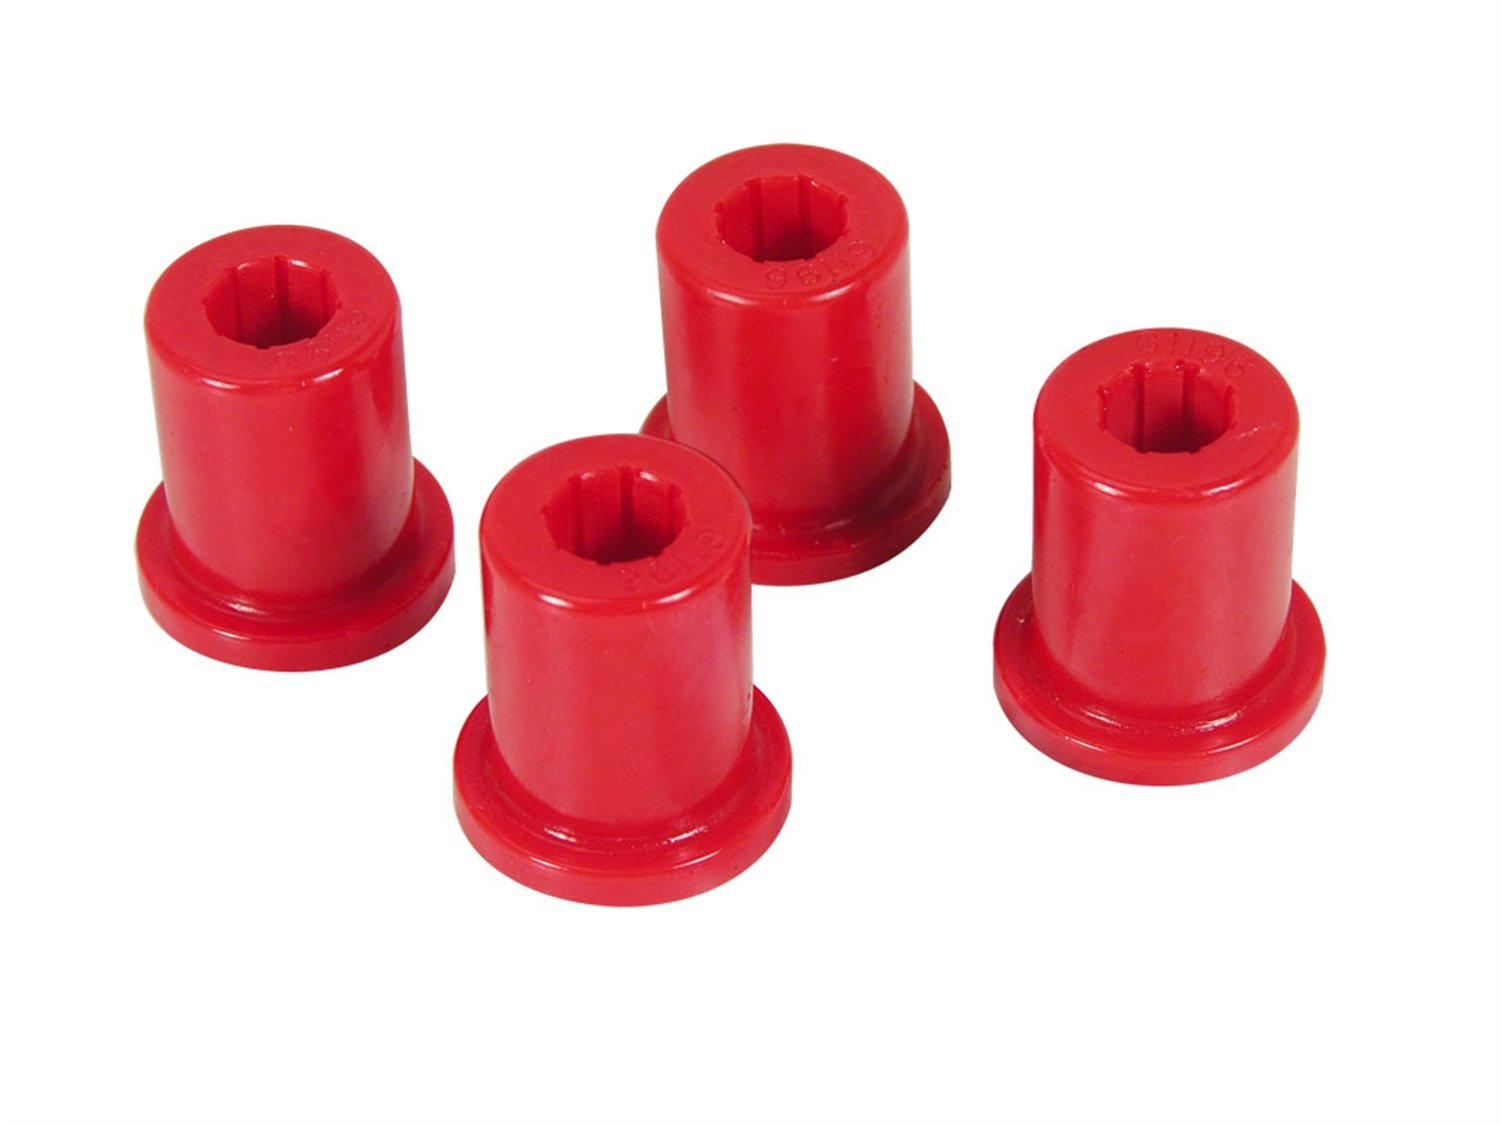 Prothane 1-802 Red Rear Frame Shackle Bushing Kit for CJ5 and CJ7